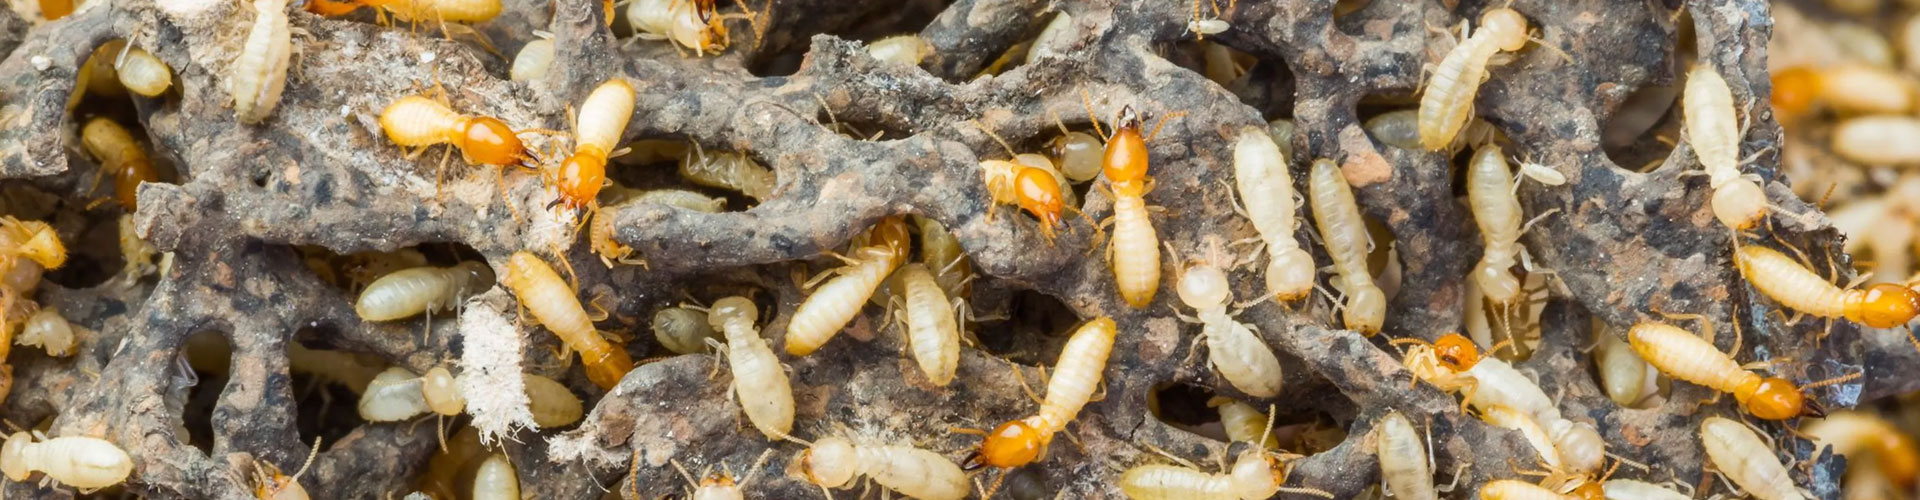 Tired of DIYs? Get Professional Pest Control Services.